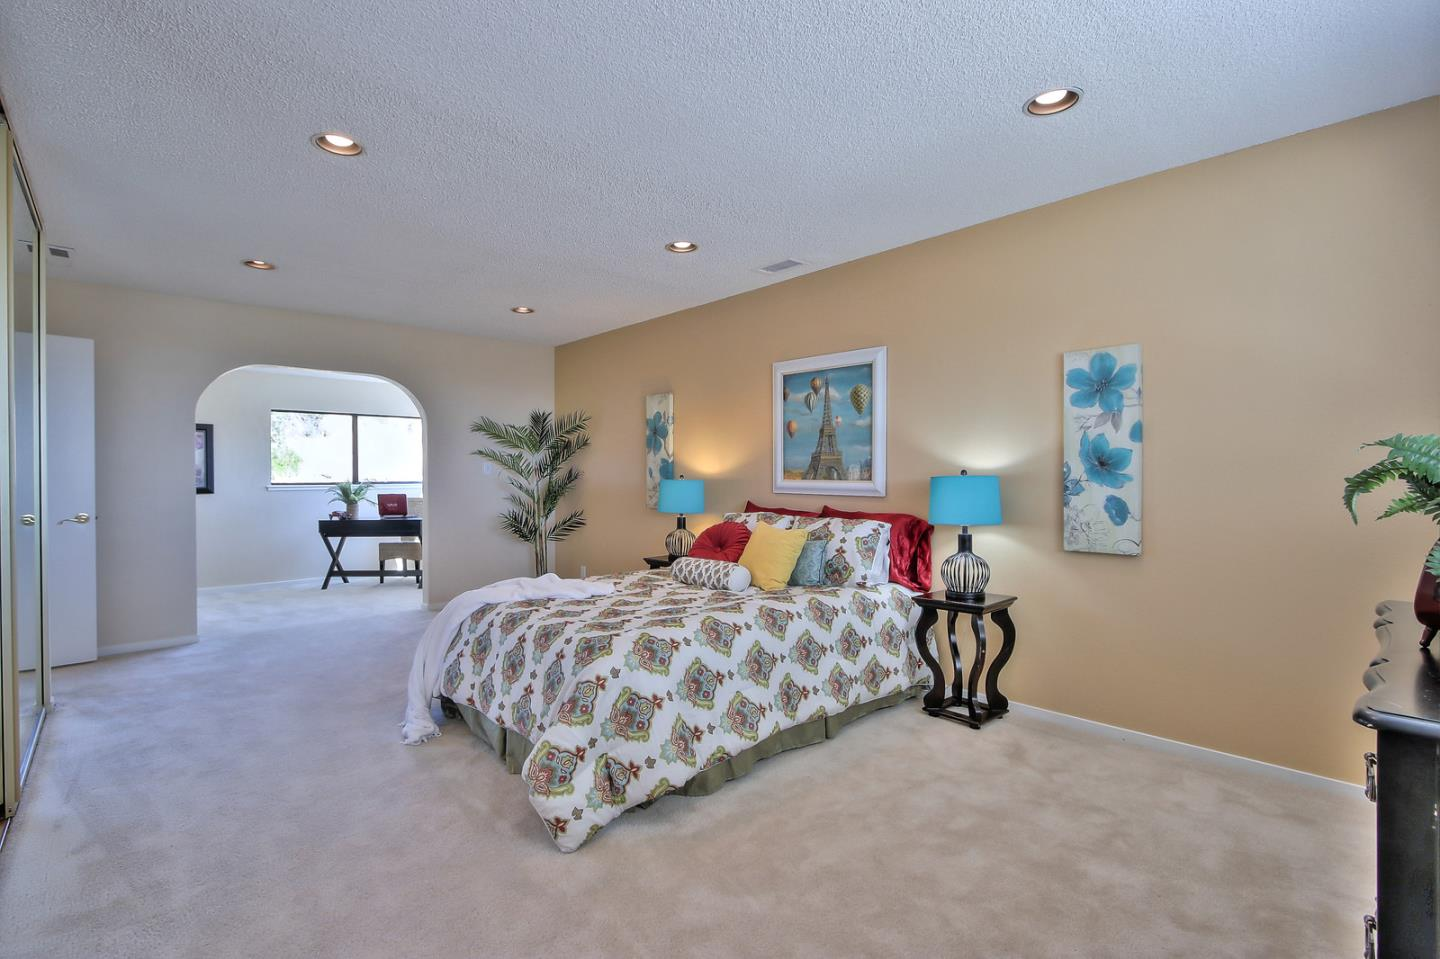 Additional photo for property listing at 950 MacDuff Court  San Jose, Калифорния 95127 Соединенные Штаты